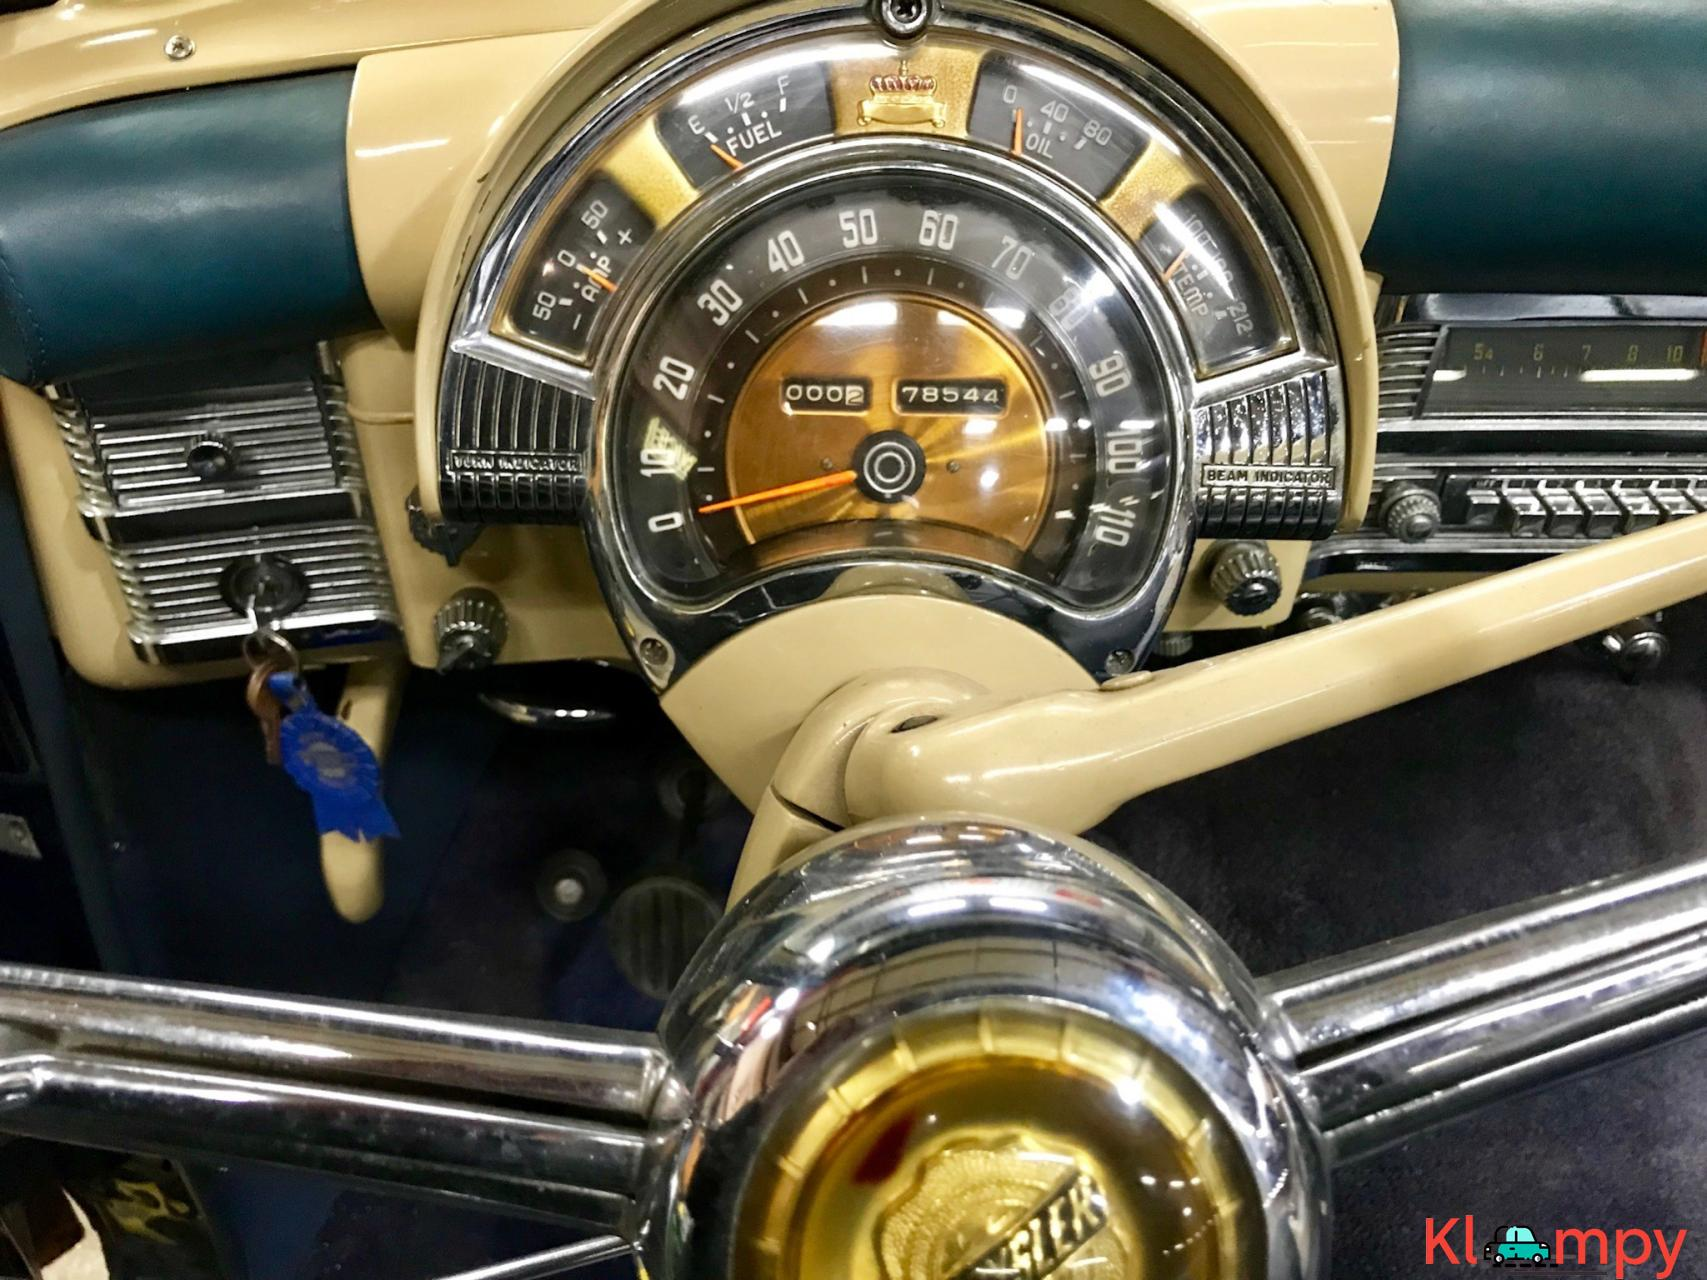 1949 Chrysler Town & Country Convertible - 15/16